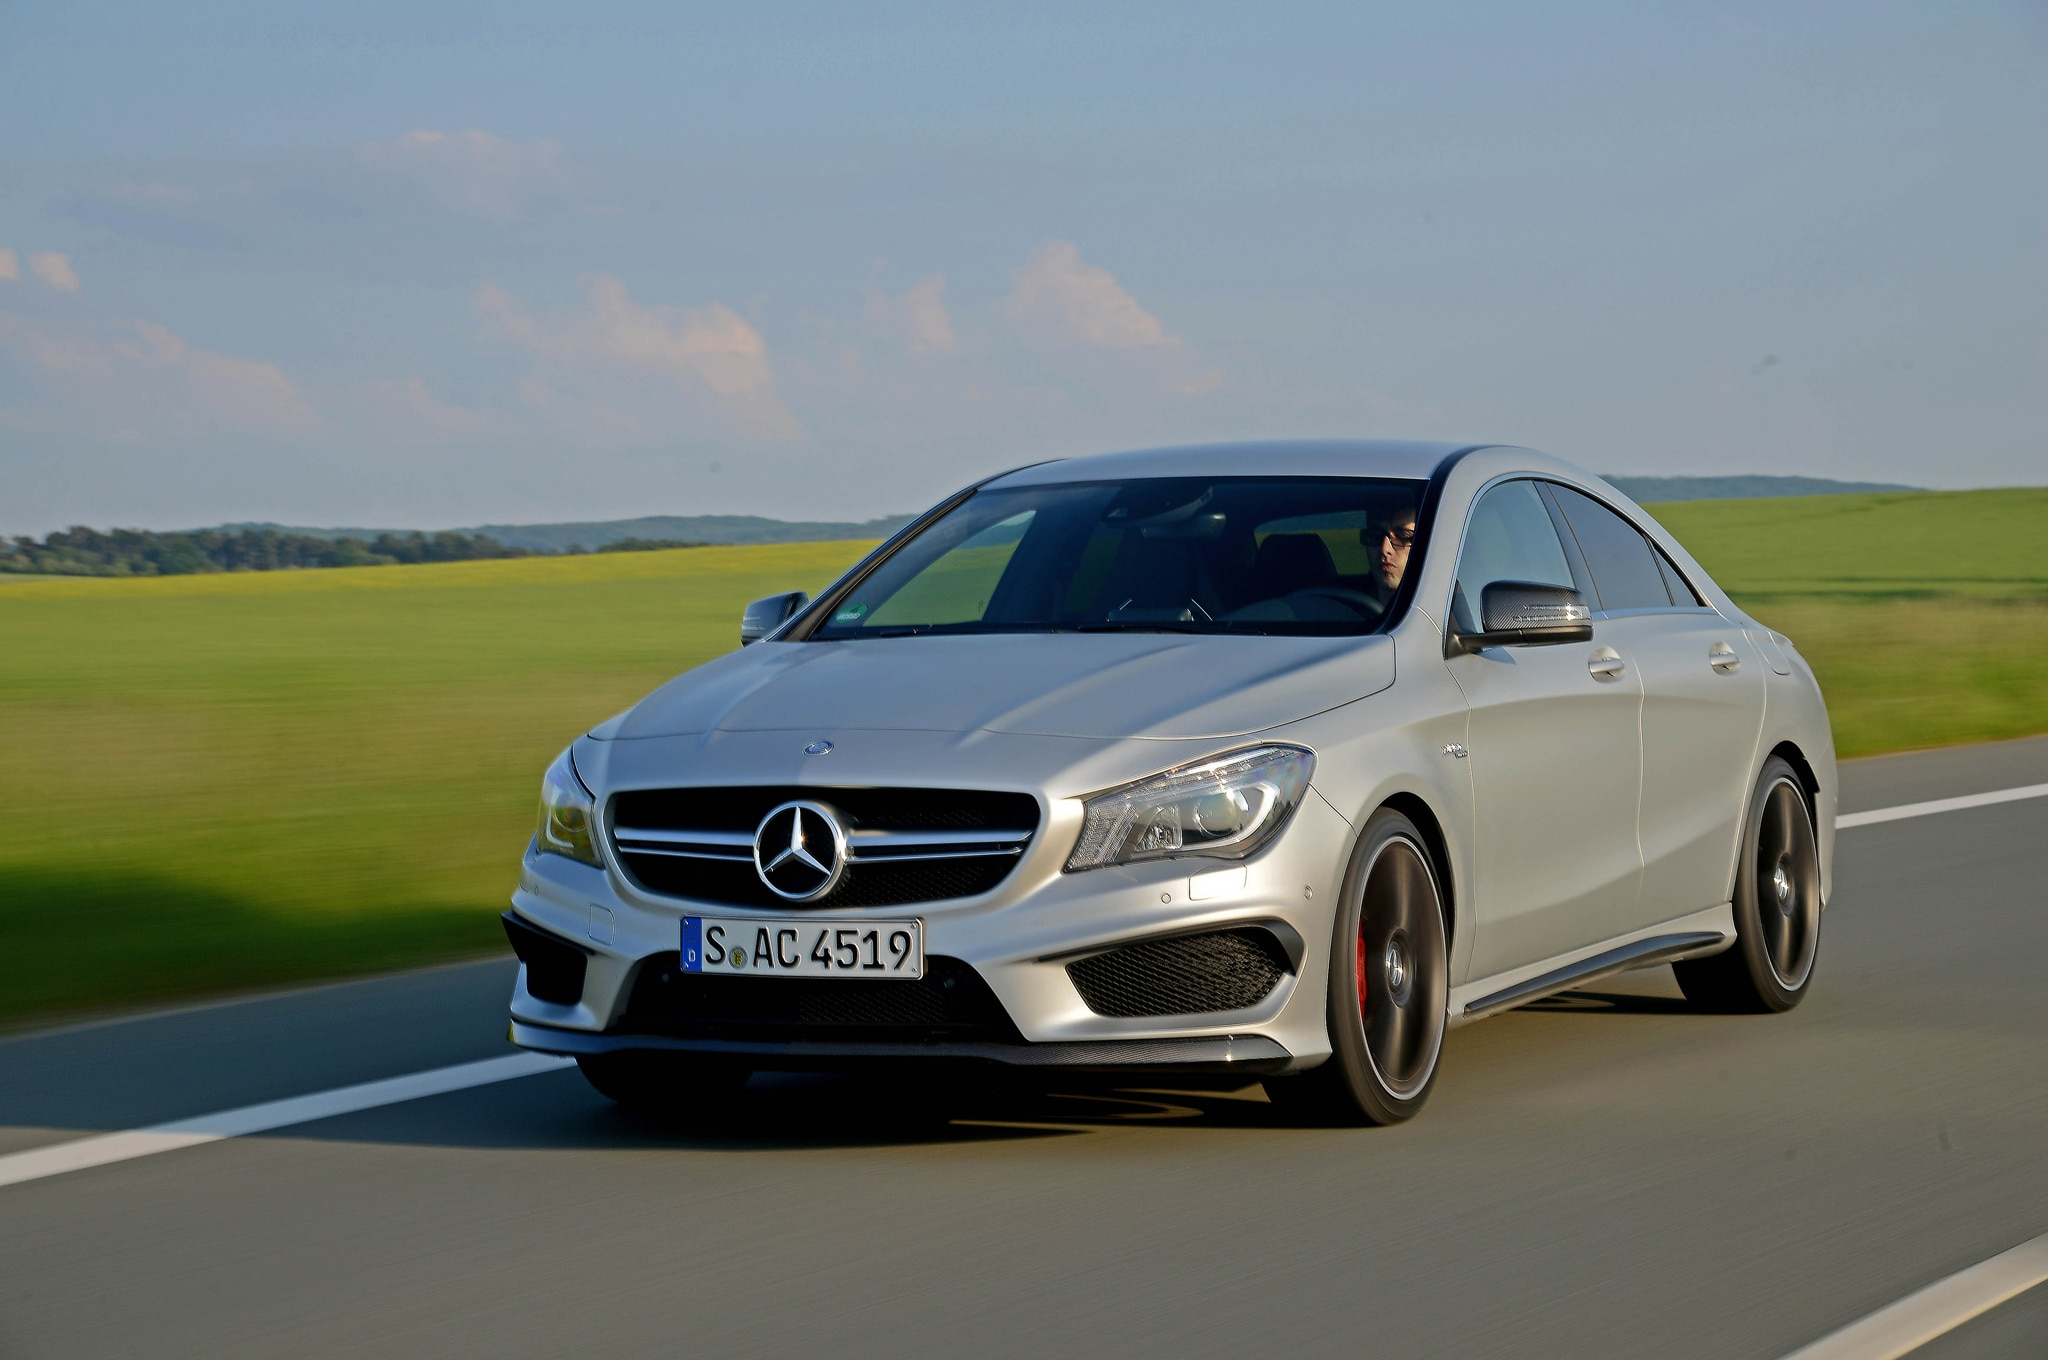 2014 mercedes benz cla45 amg first drive automobile magazine. Cars Review. Best American Auto & Cars Review